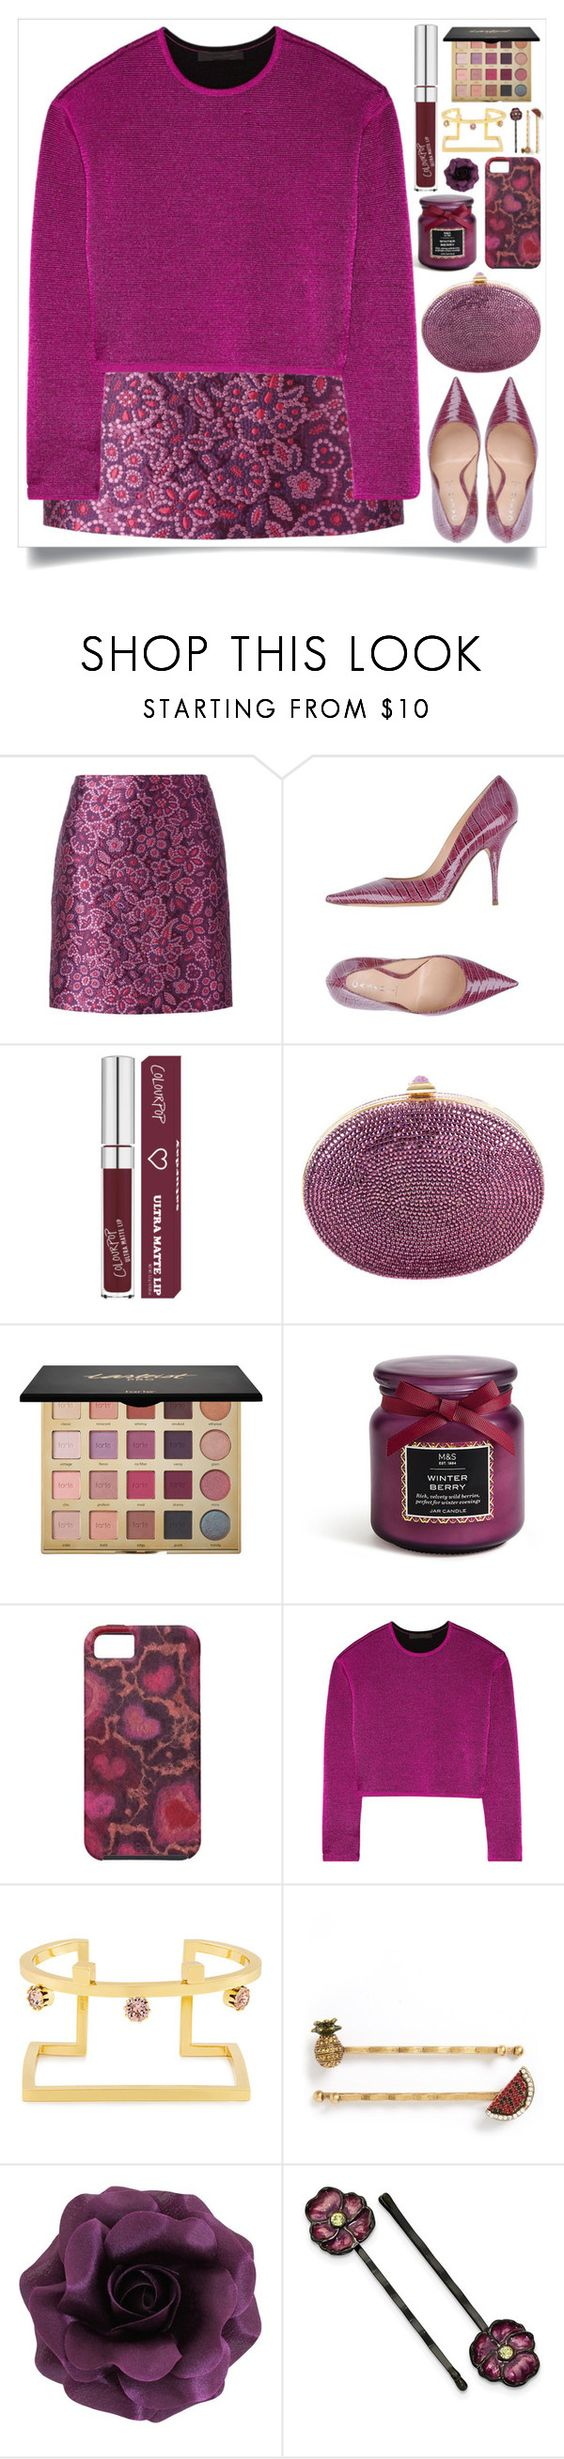 """Top Fashion Sets for Feb 13th, 2017"" by itsybitsy62 ❤ liked on Polyvore featuring Lanvin, Casadei, Judith Leiber, tarte, Alexander Wang, Joomi Lim, Marc by Marc Jacobs and 1928"